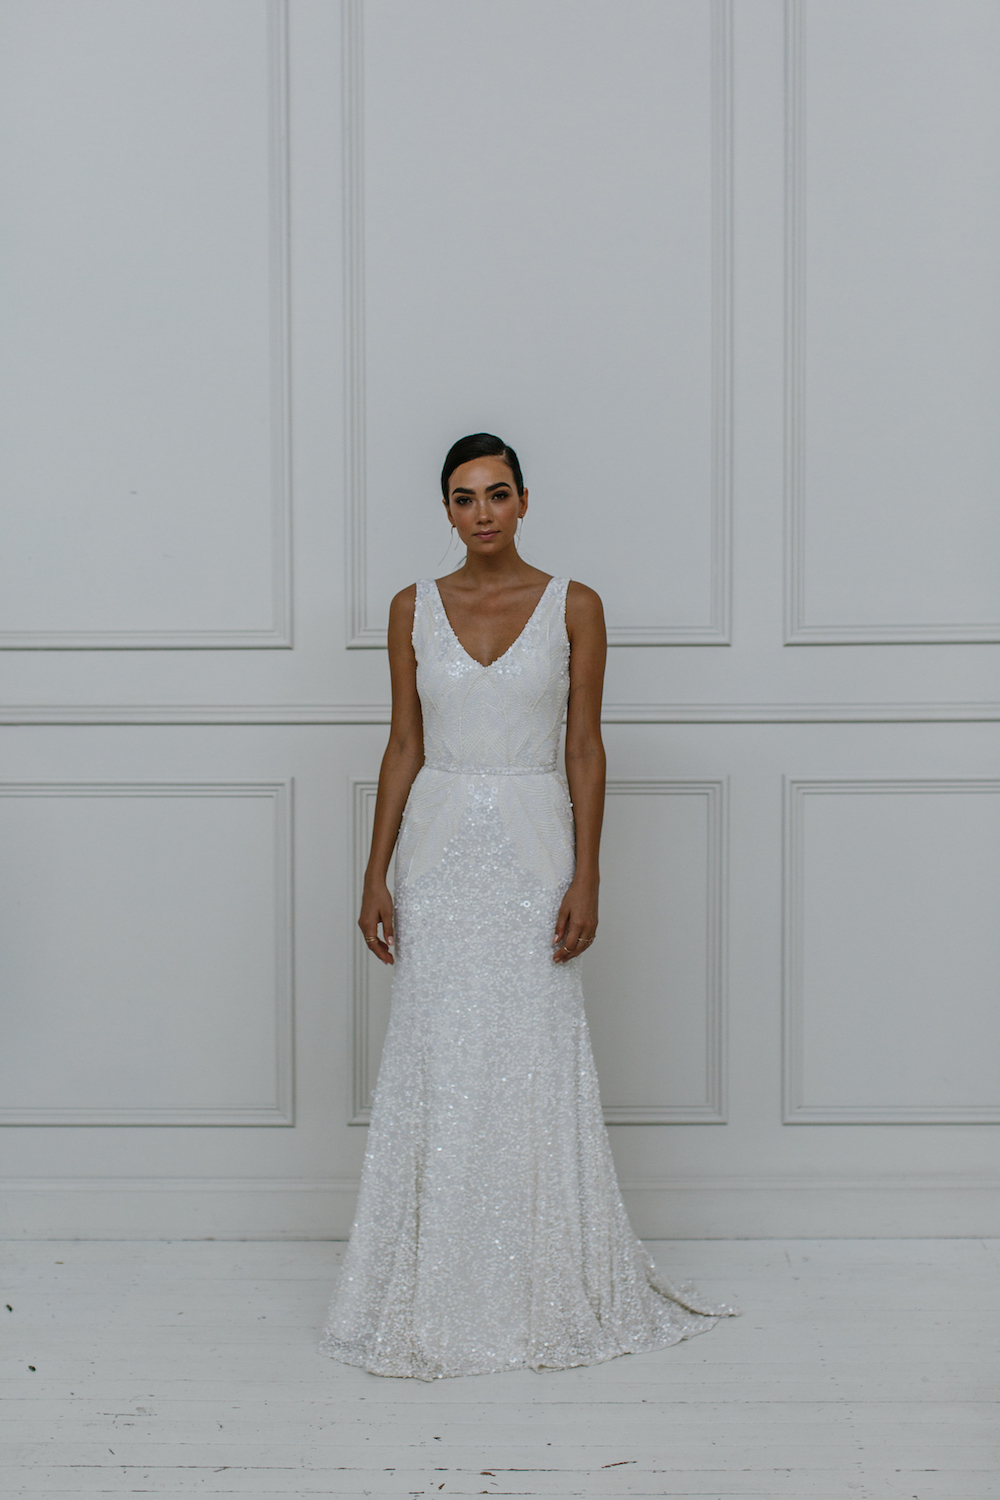 Olympia - KWH by Karen Willis Holmes 2018 sequin wedding dress Collection